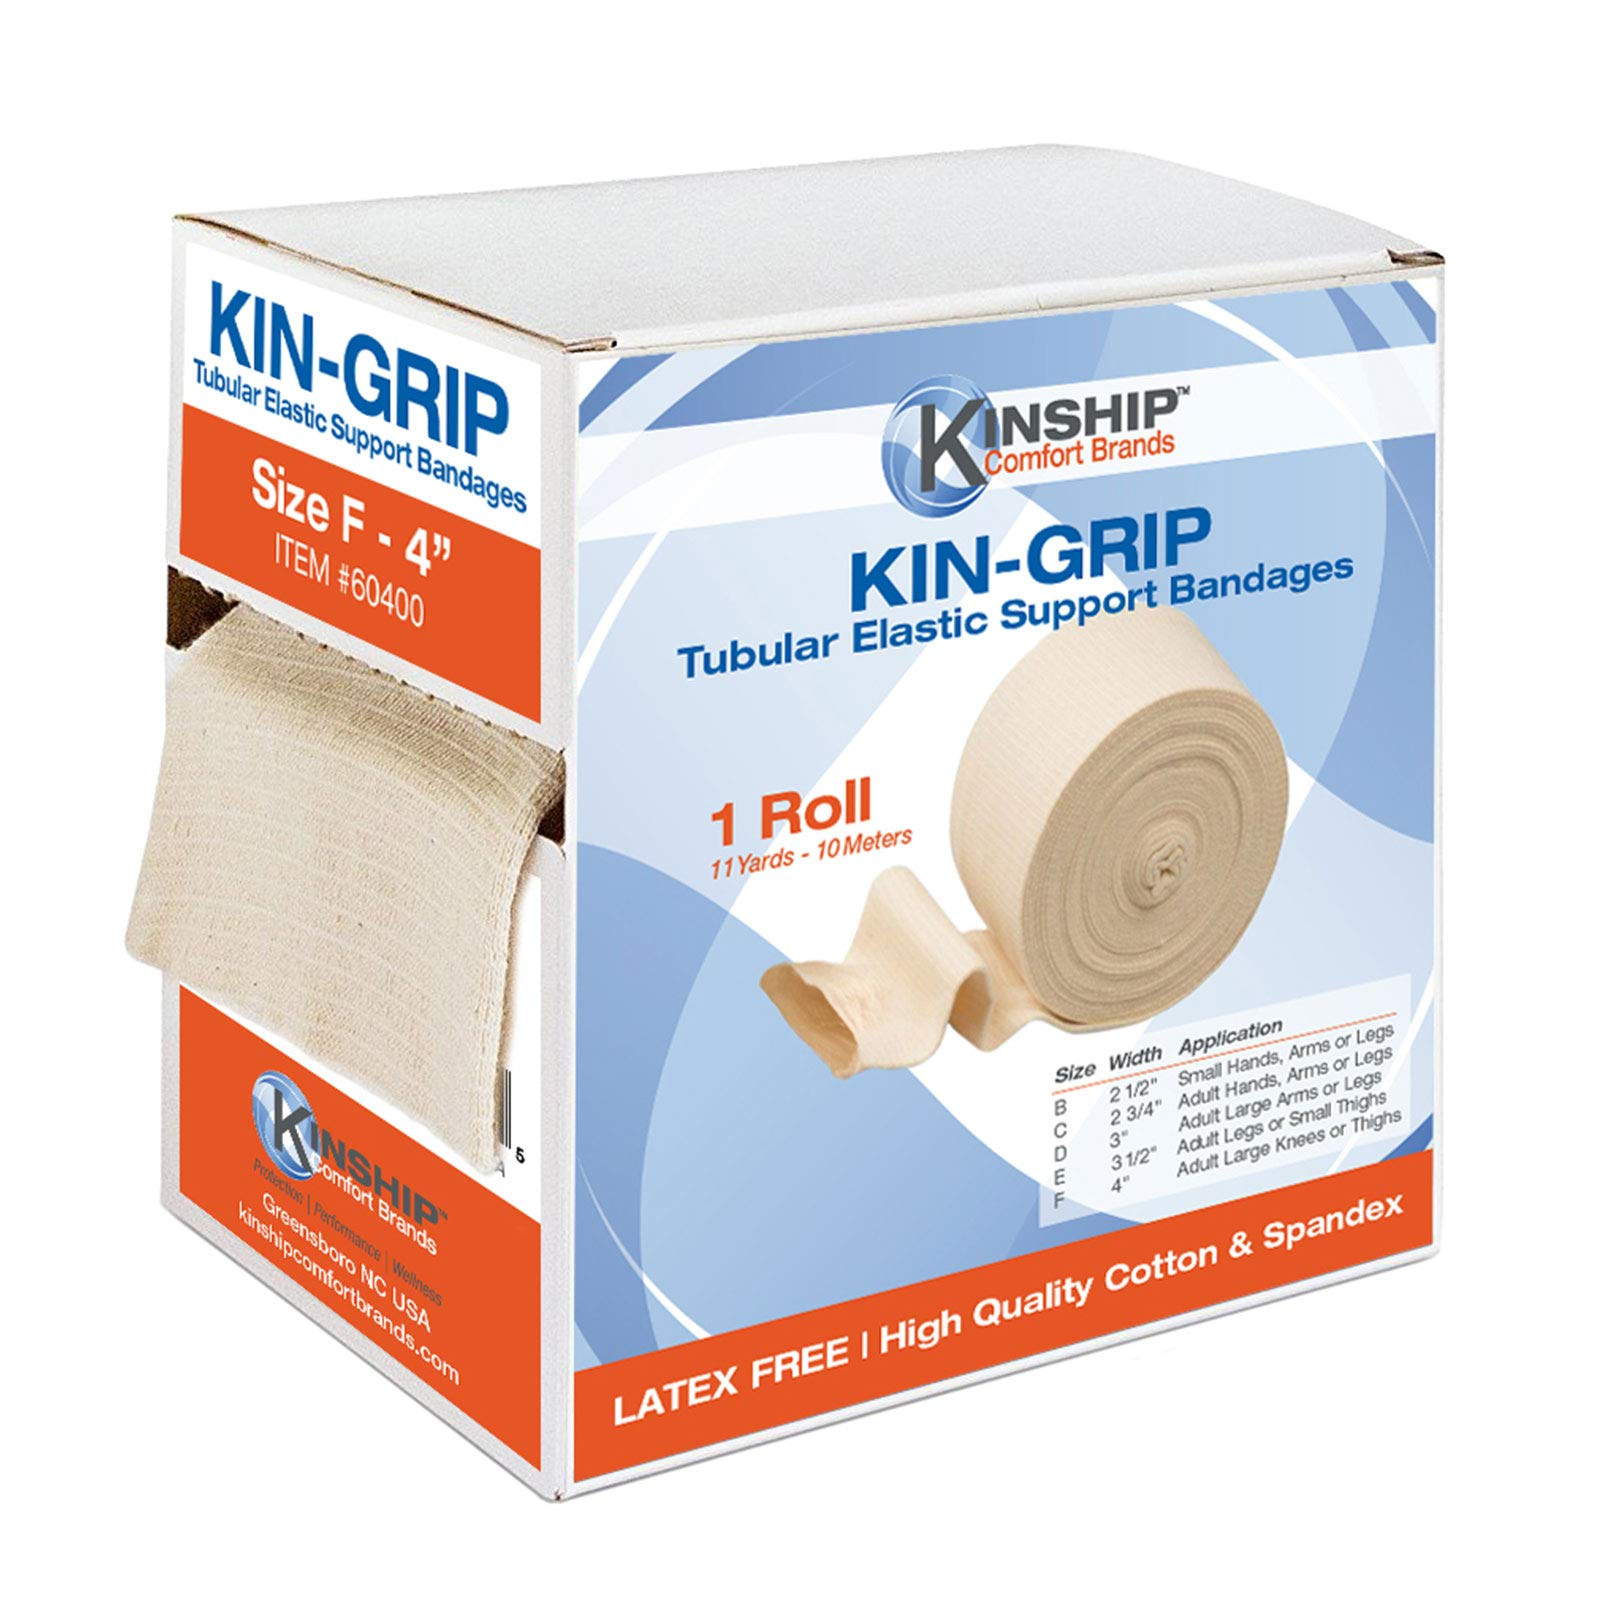 Kin-Grip Latex-Free Cotton Spandex Tubular Elastic Support Bandages by Kinship Comfort Brands® | Size F (4'' x 10 Meters) (Available in B,C,D,E,F by Kinship Comfort Brand